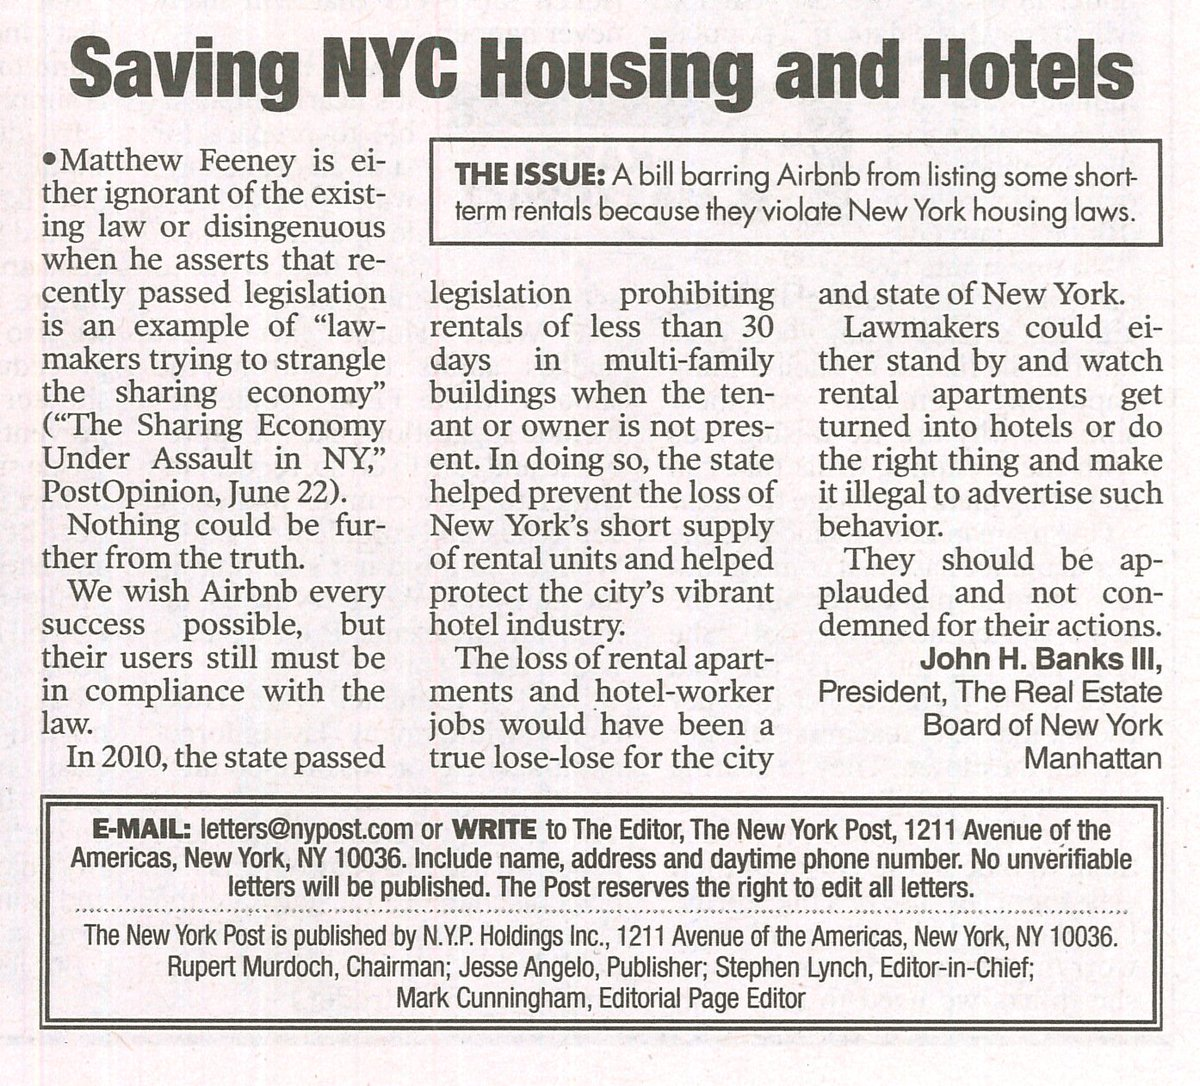 REBNY Pres John Banks speaks out in Letter to the Editor of  @nypost on @Airbnb, the law & #NYC housing crunch https://t.co/pgRrnLECuS